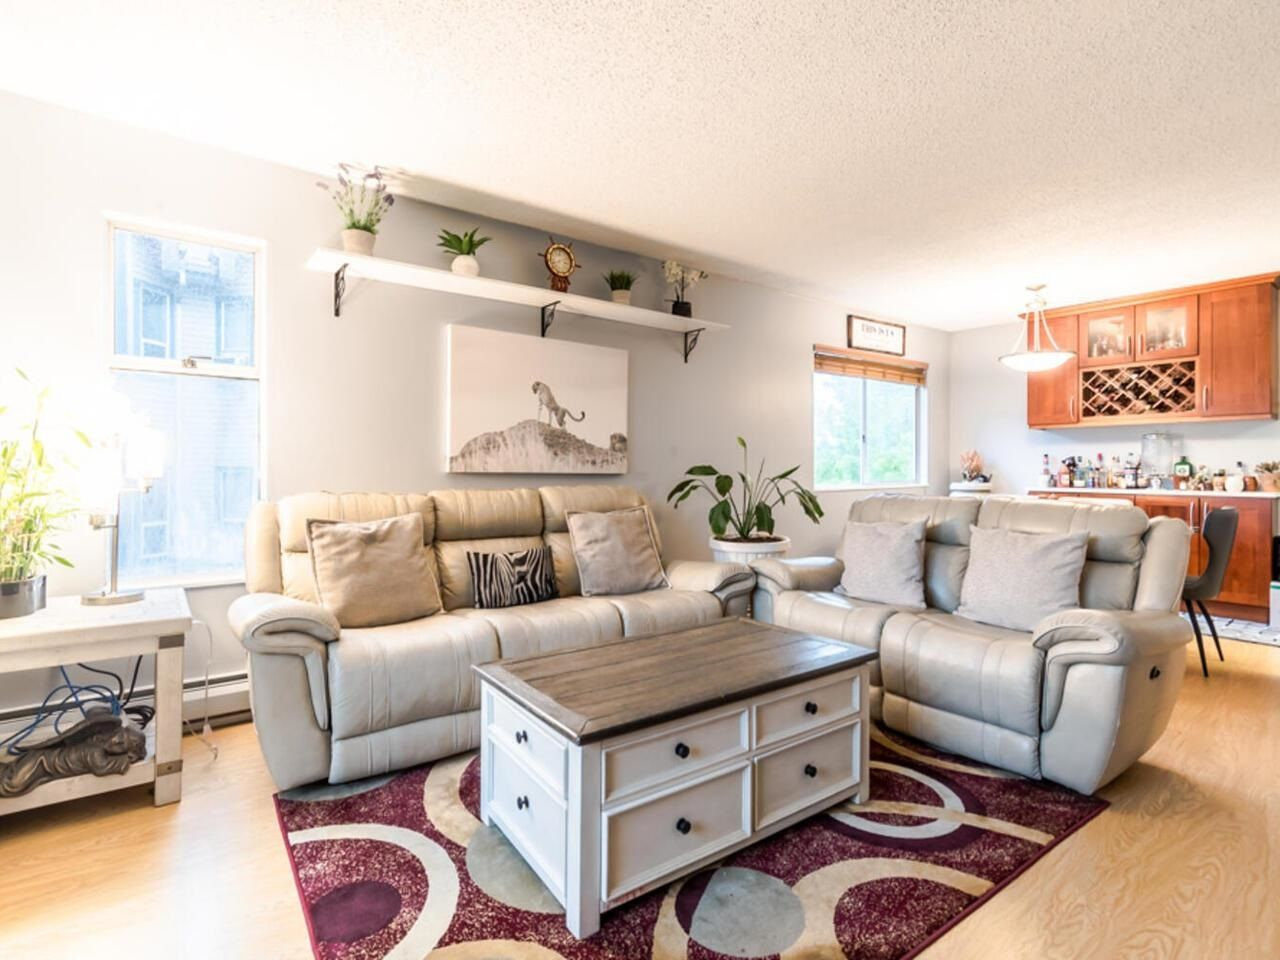 """Main Photo: 301 5664 200 Street in Langley: Langley City Condo for sale in """"Langley Village"""" : MLS®# R2602602"""